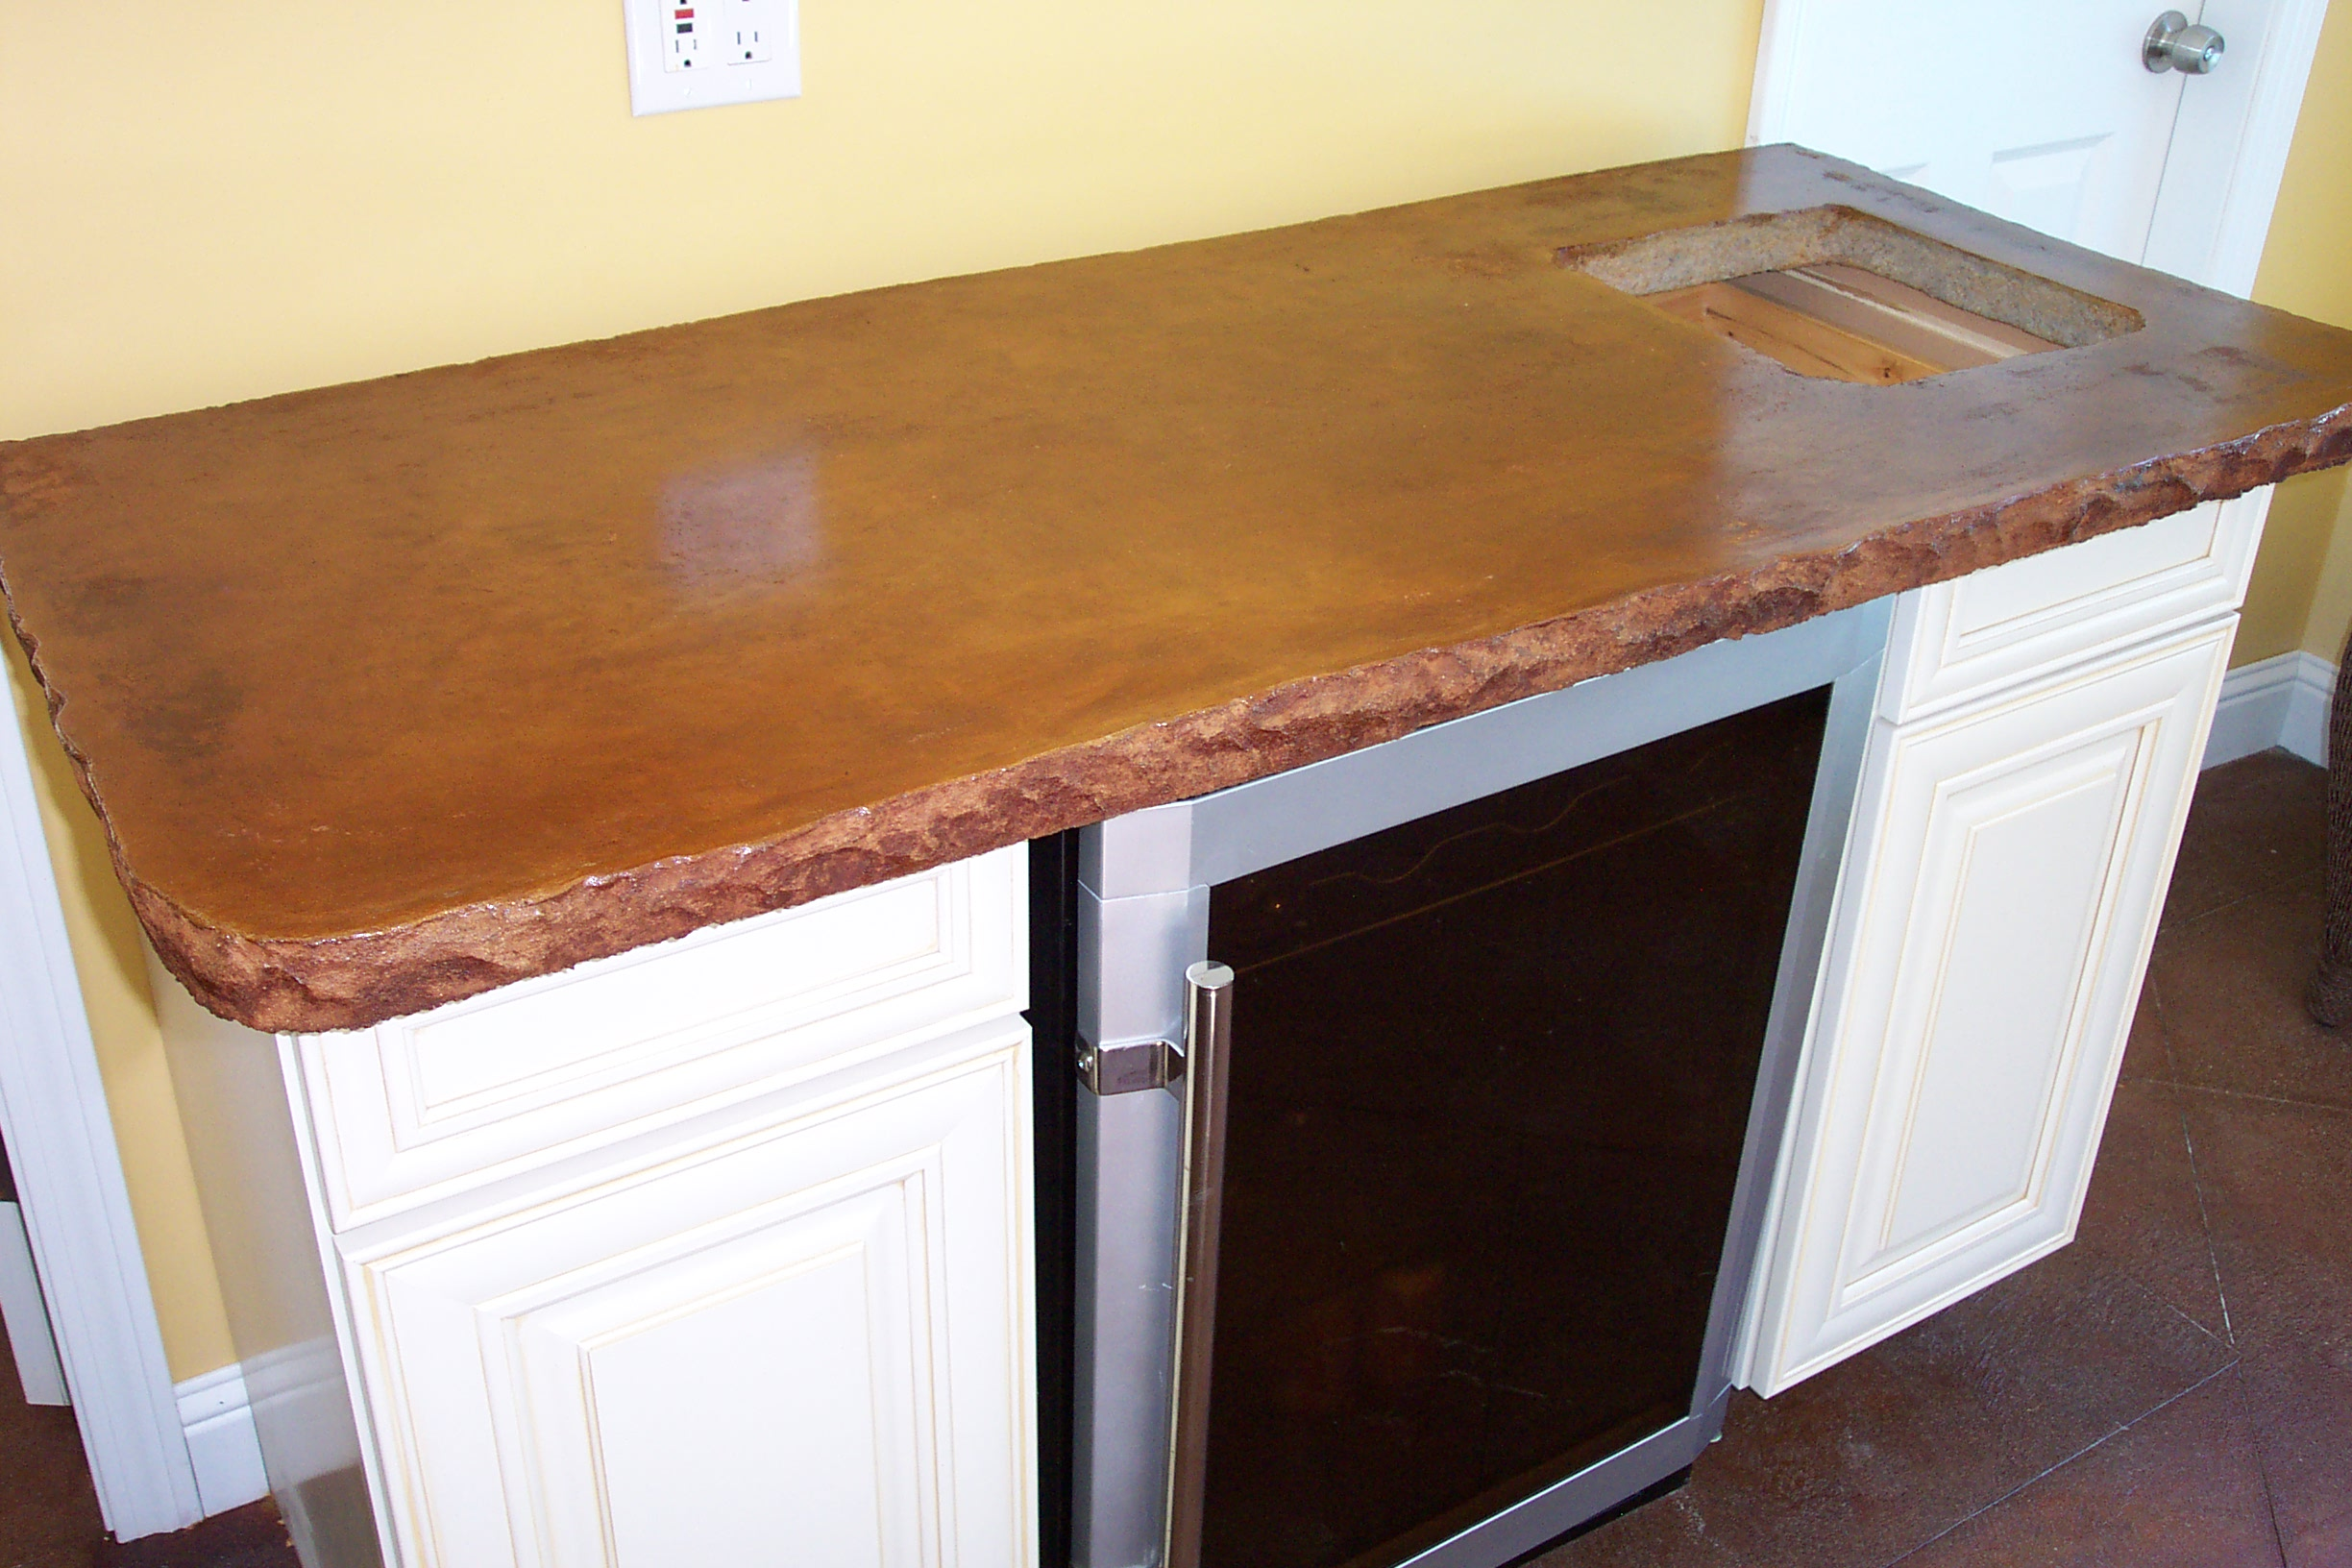 Click To Enlarge The Matching Acid Stained Concrete Counter For The Wet Bar.